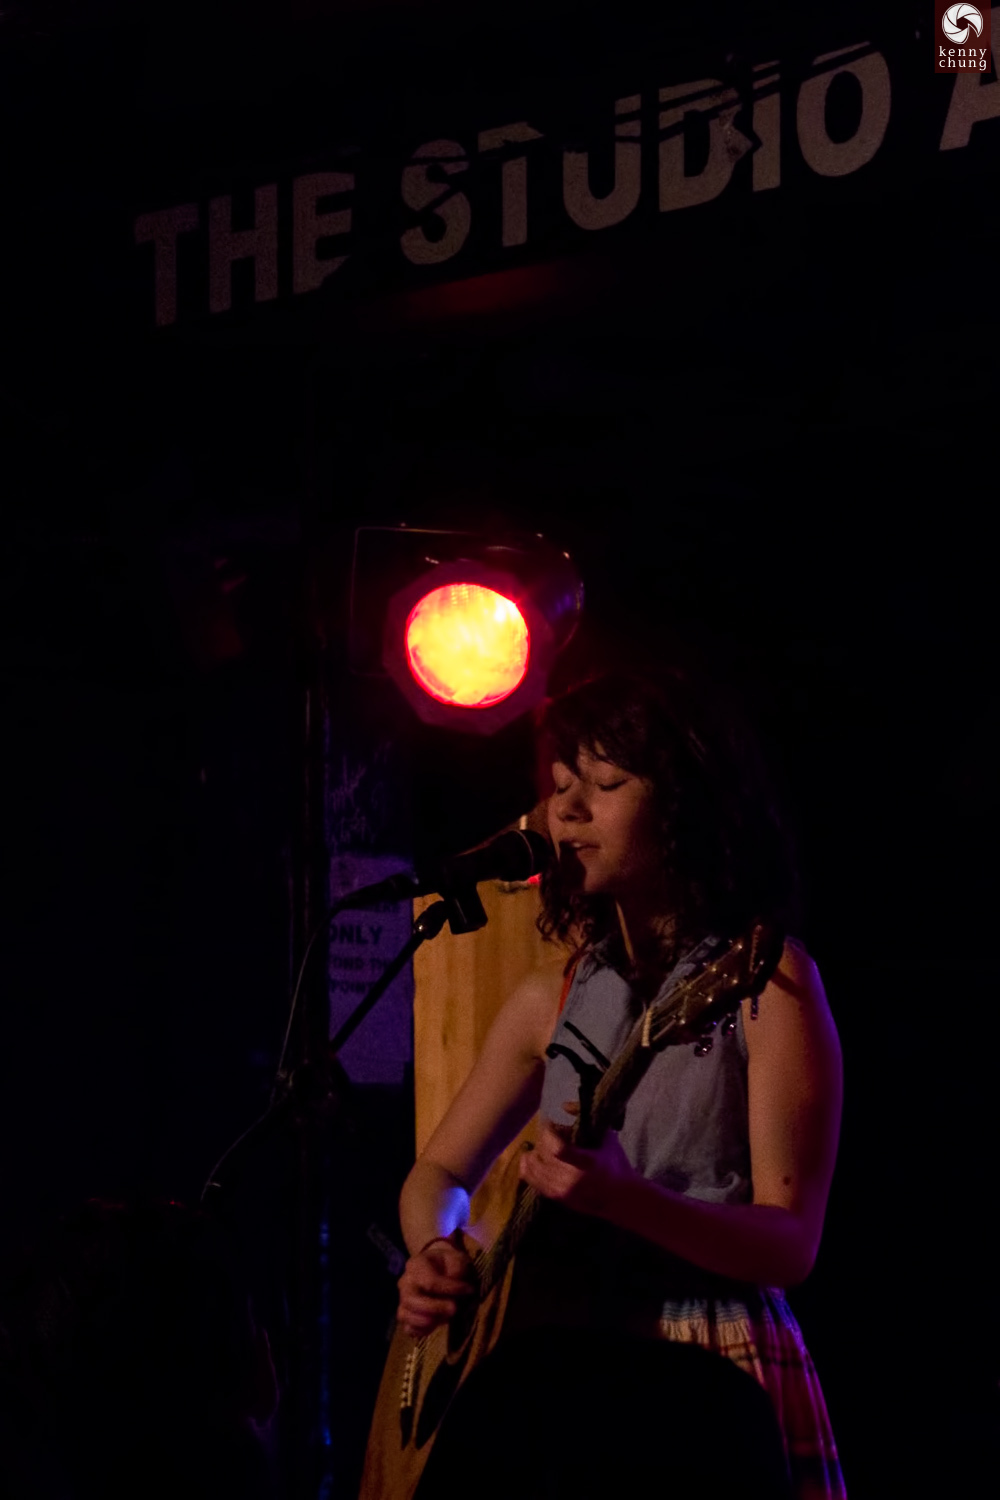 YouTube artist Mree (Marie Hsiao) performing at Webster Hall, NYC